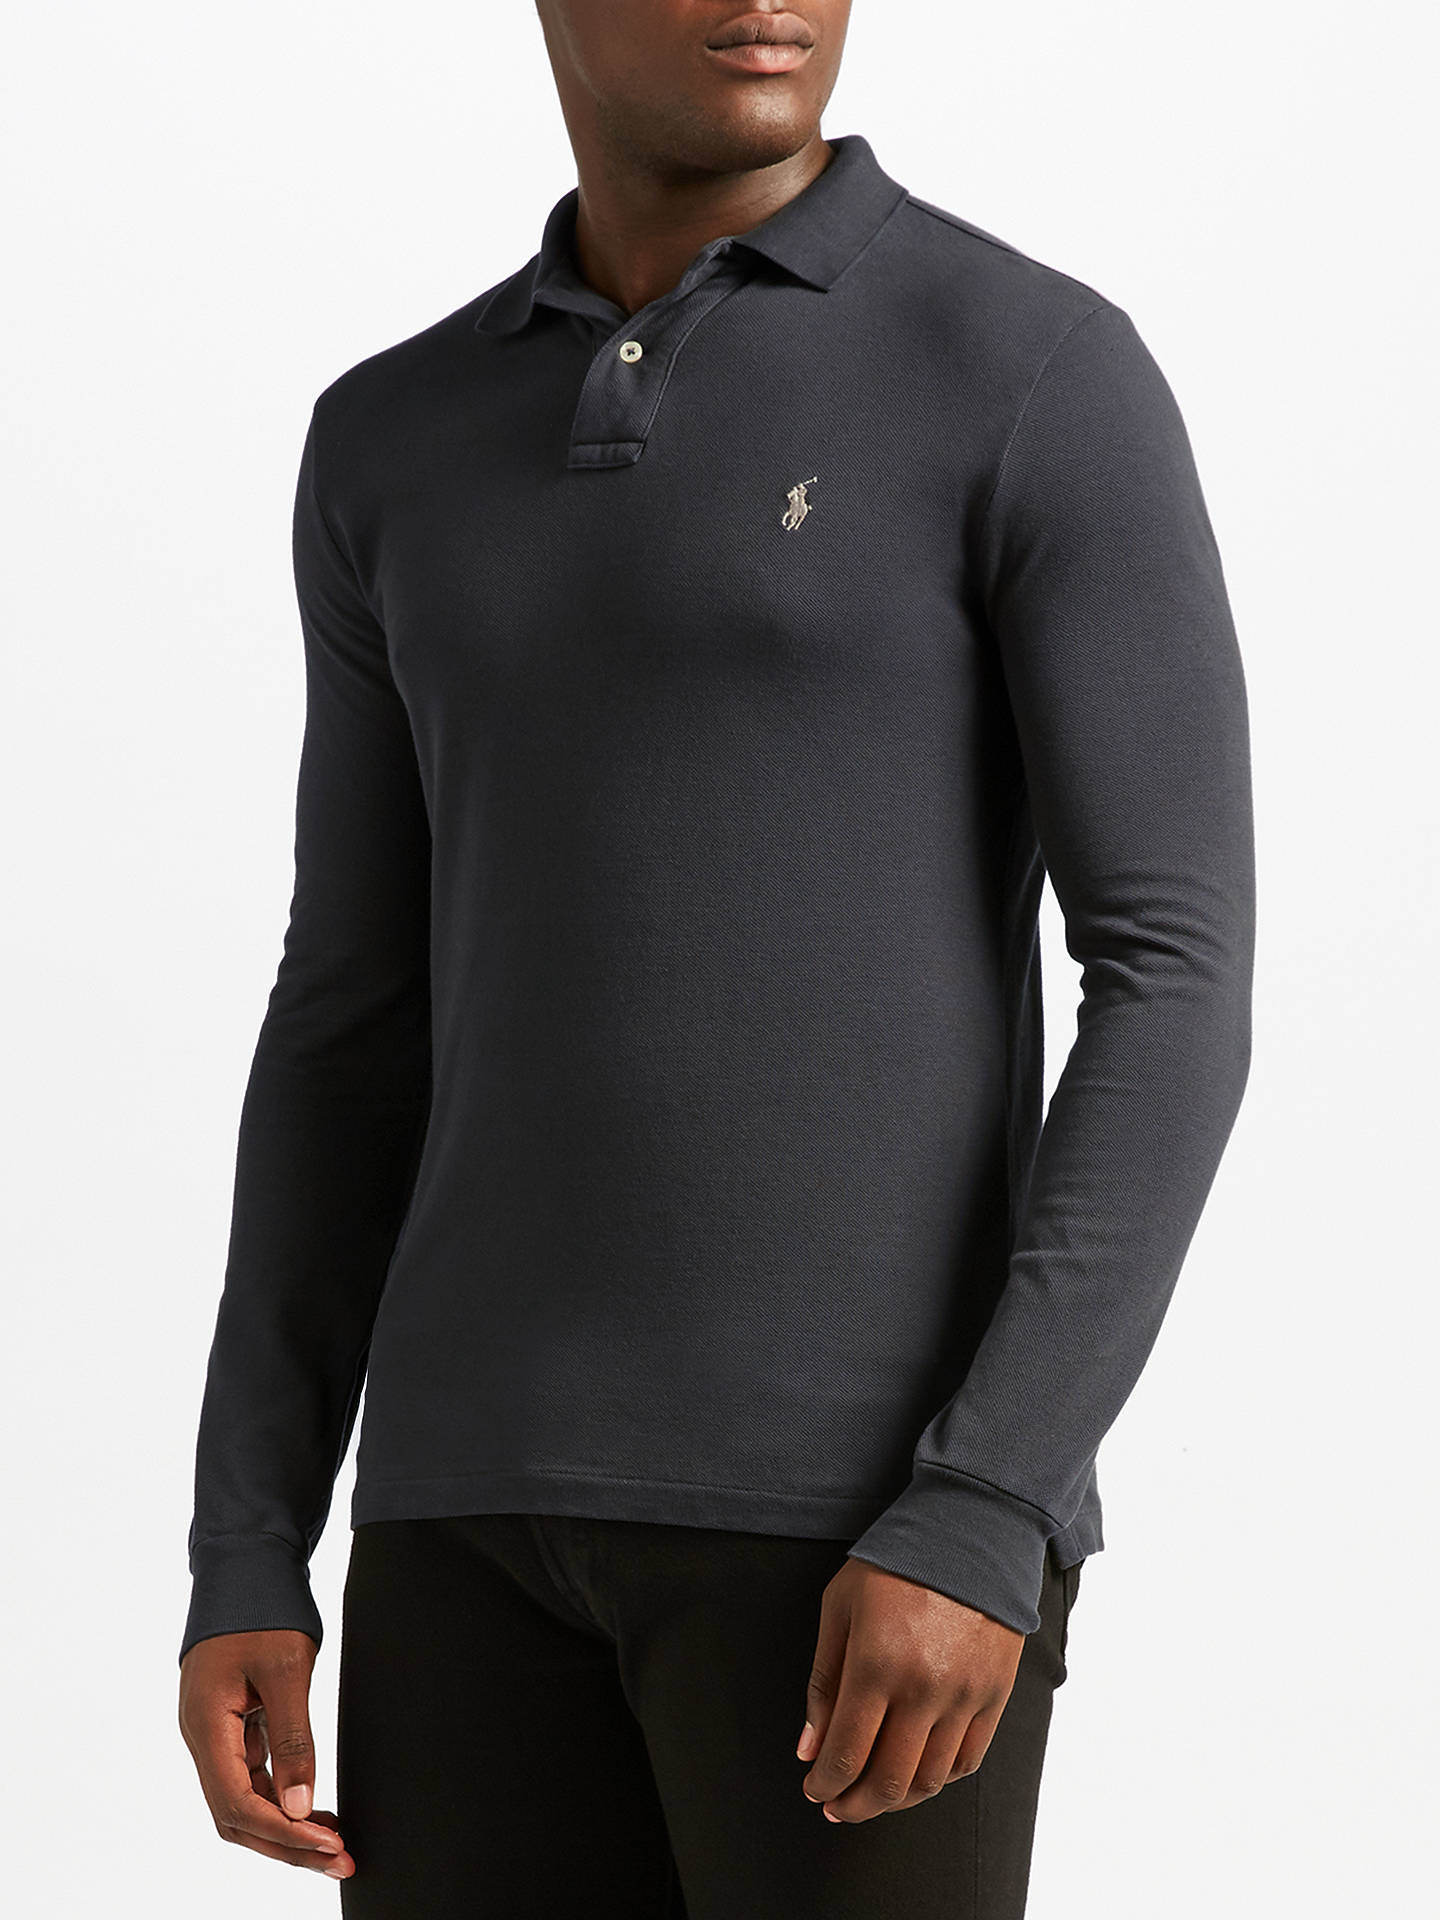 938521a9 Buy Polo Ralph Lauren Long Sleeve Polo Shirt, Grey, S Online at johnlewis.